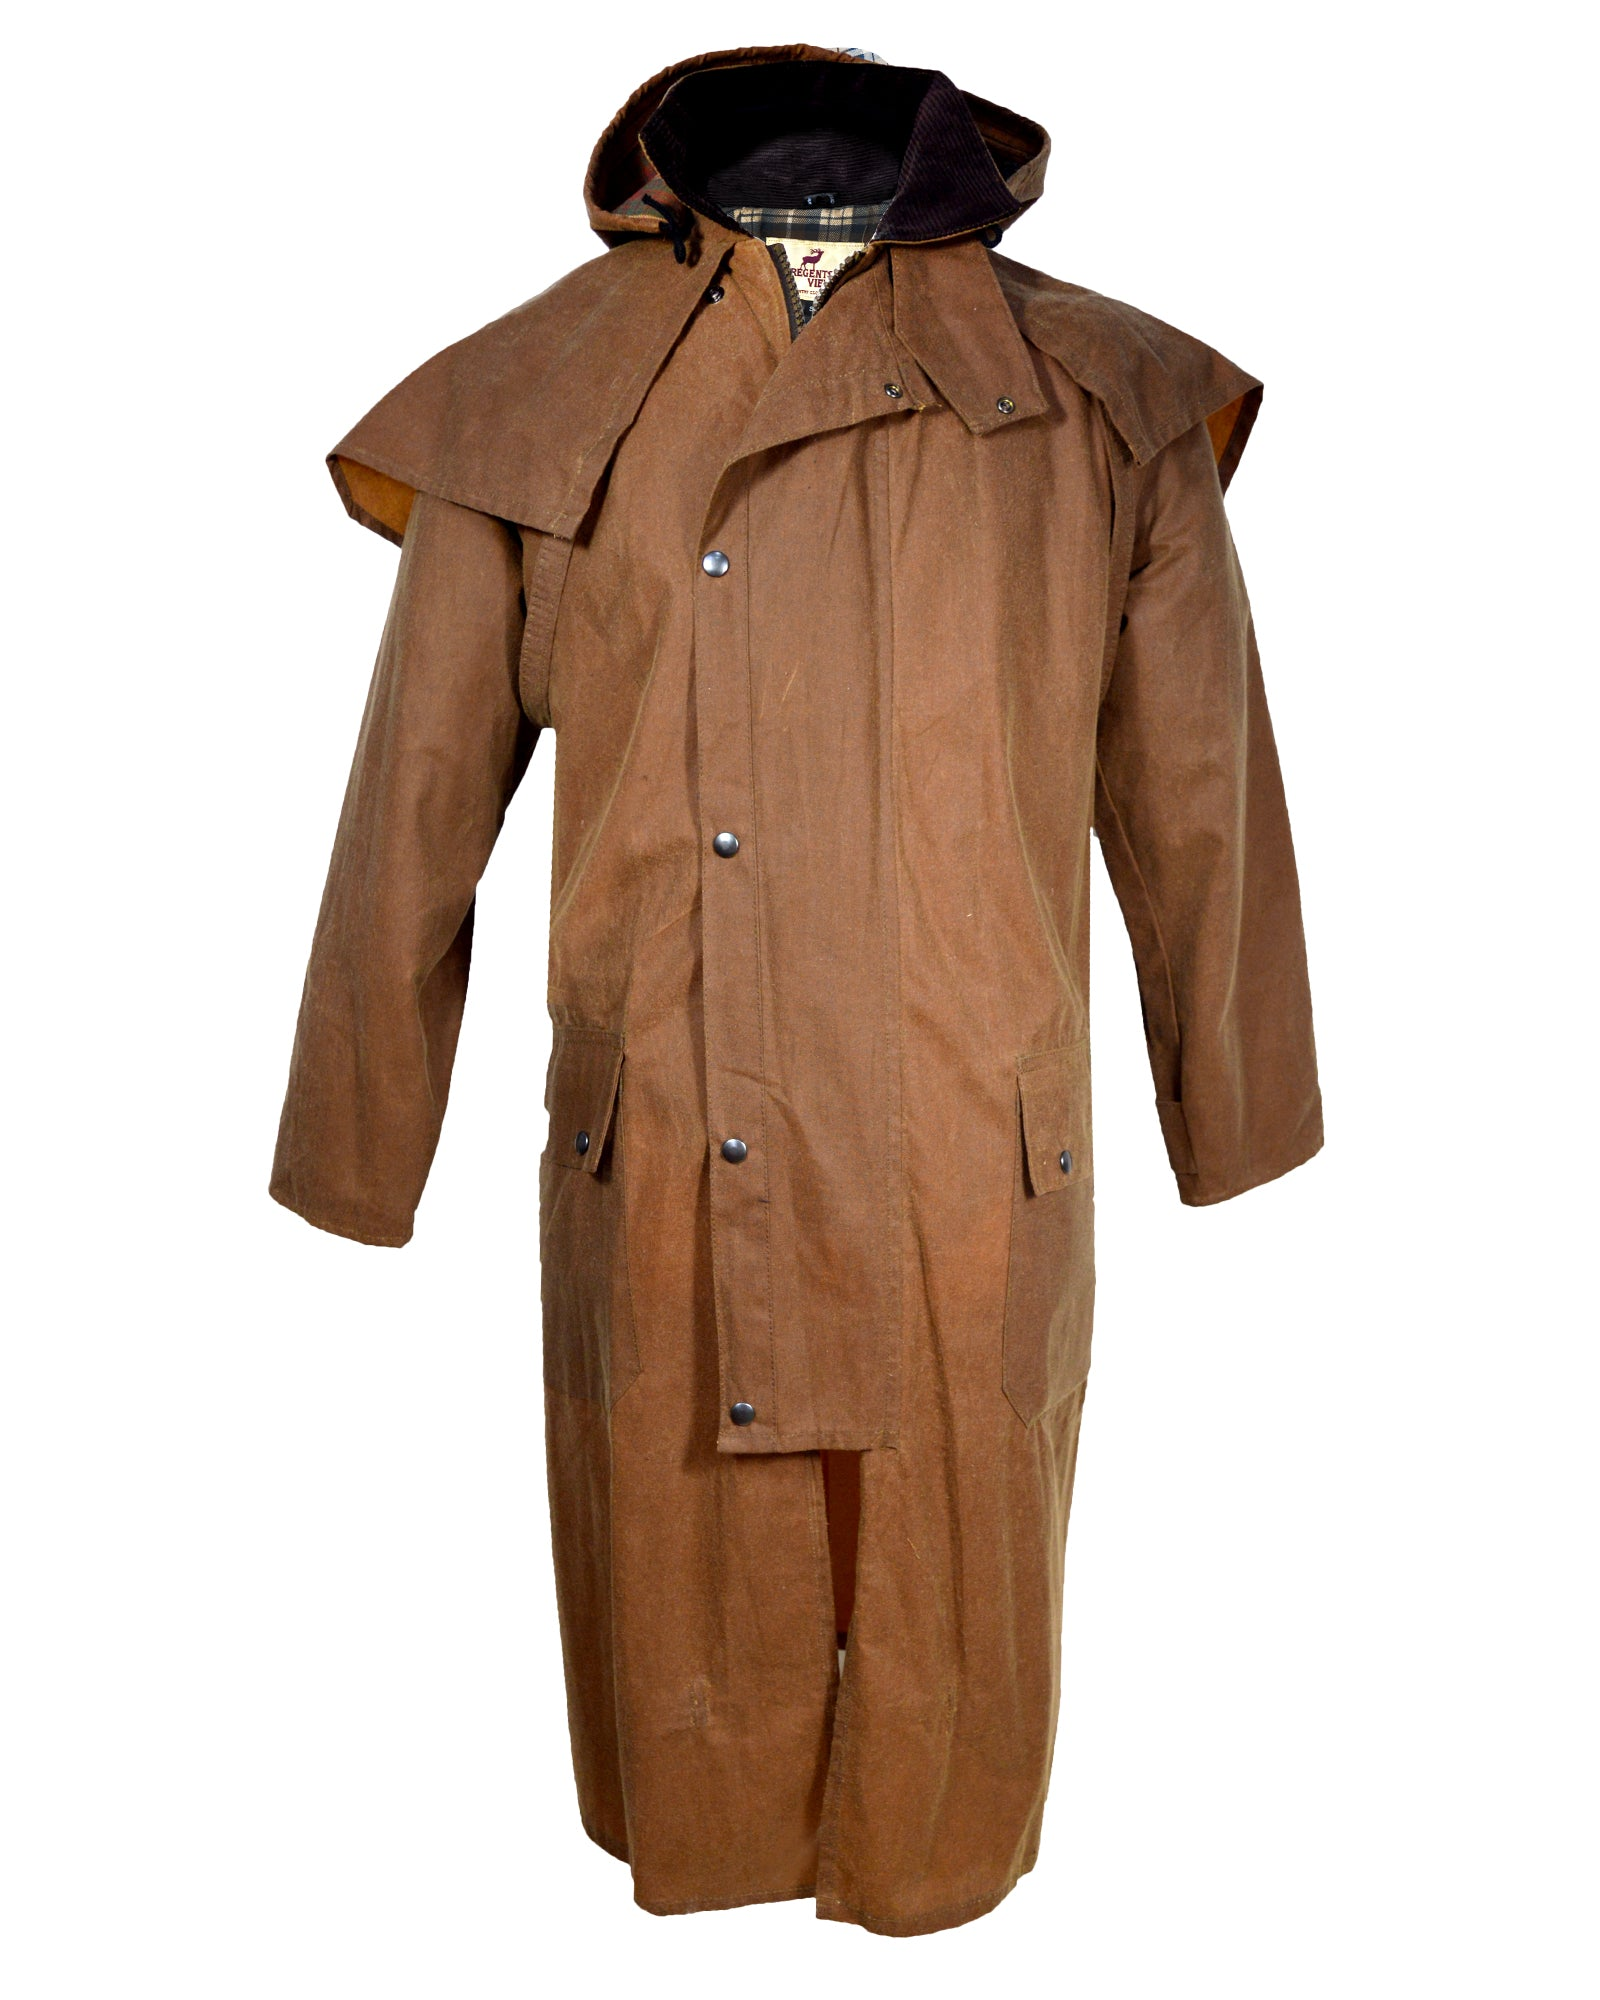 Regents View Waxed Cotton Stockman / Drover Long Coat - Tan